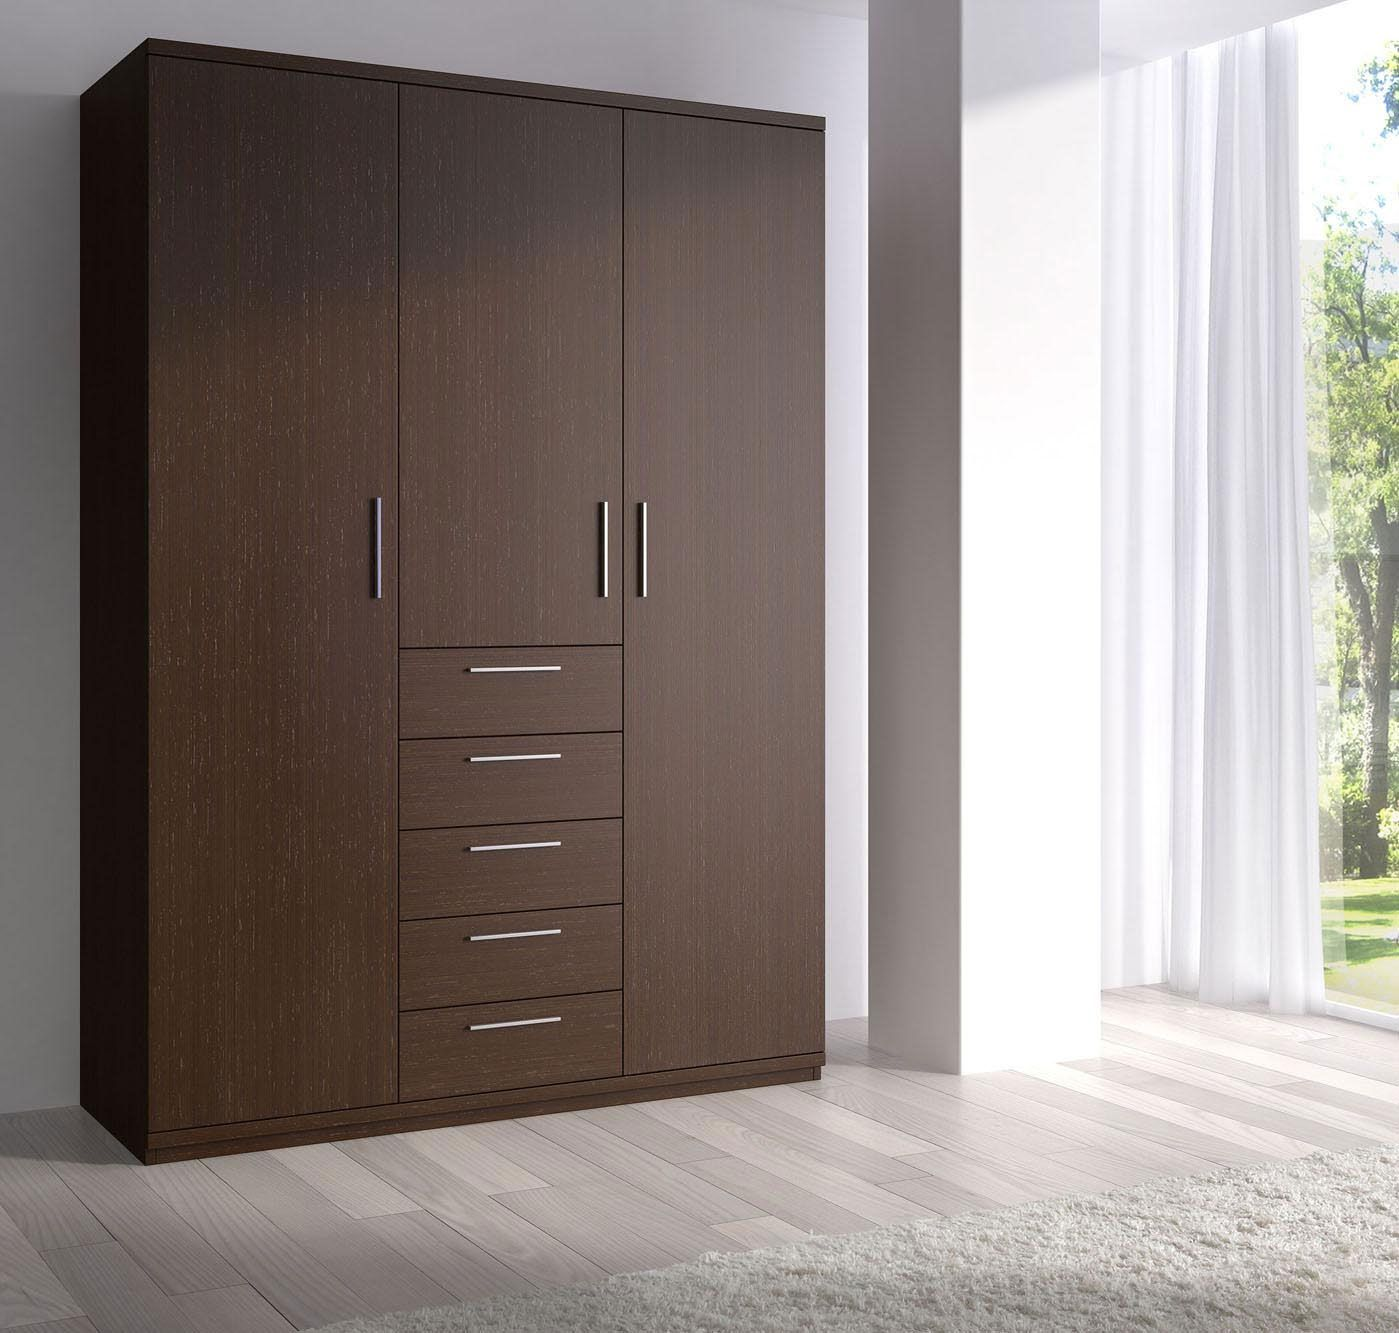 Bedroom classy wooden closet wardrobe ideas with modern for Bedroom closets designs